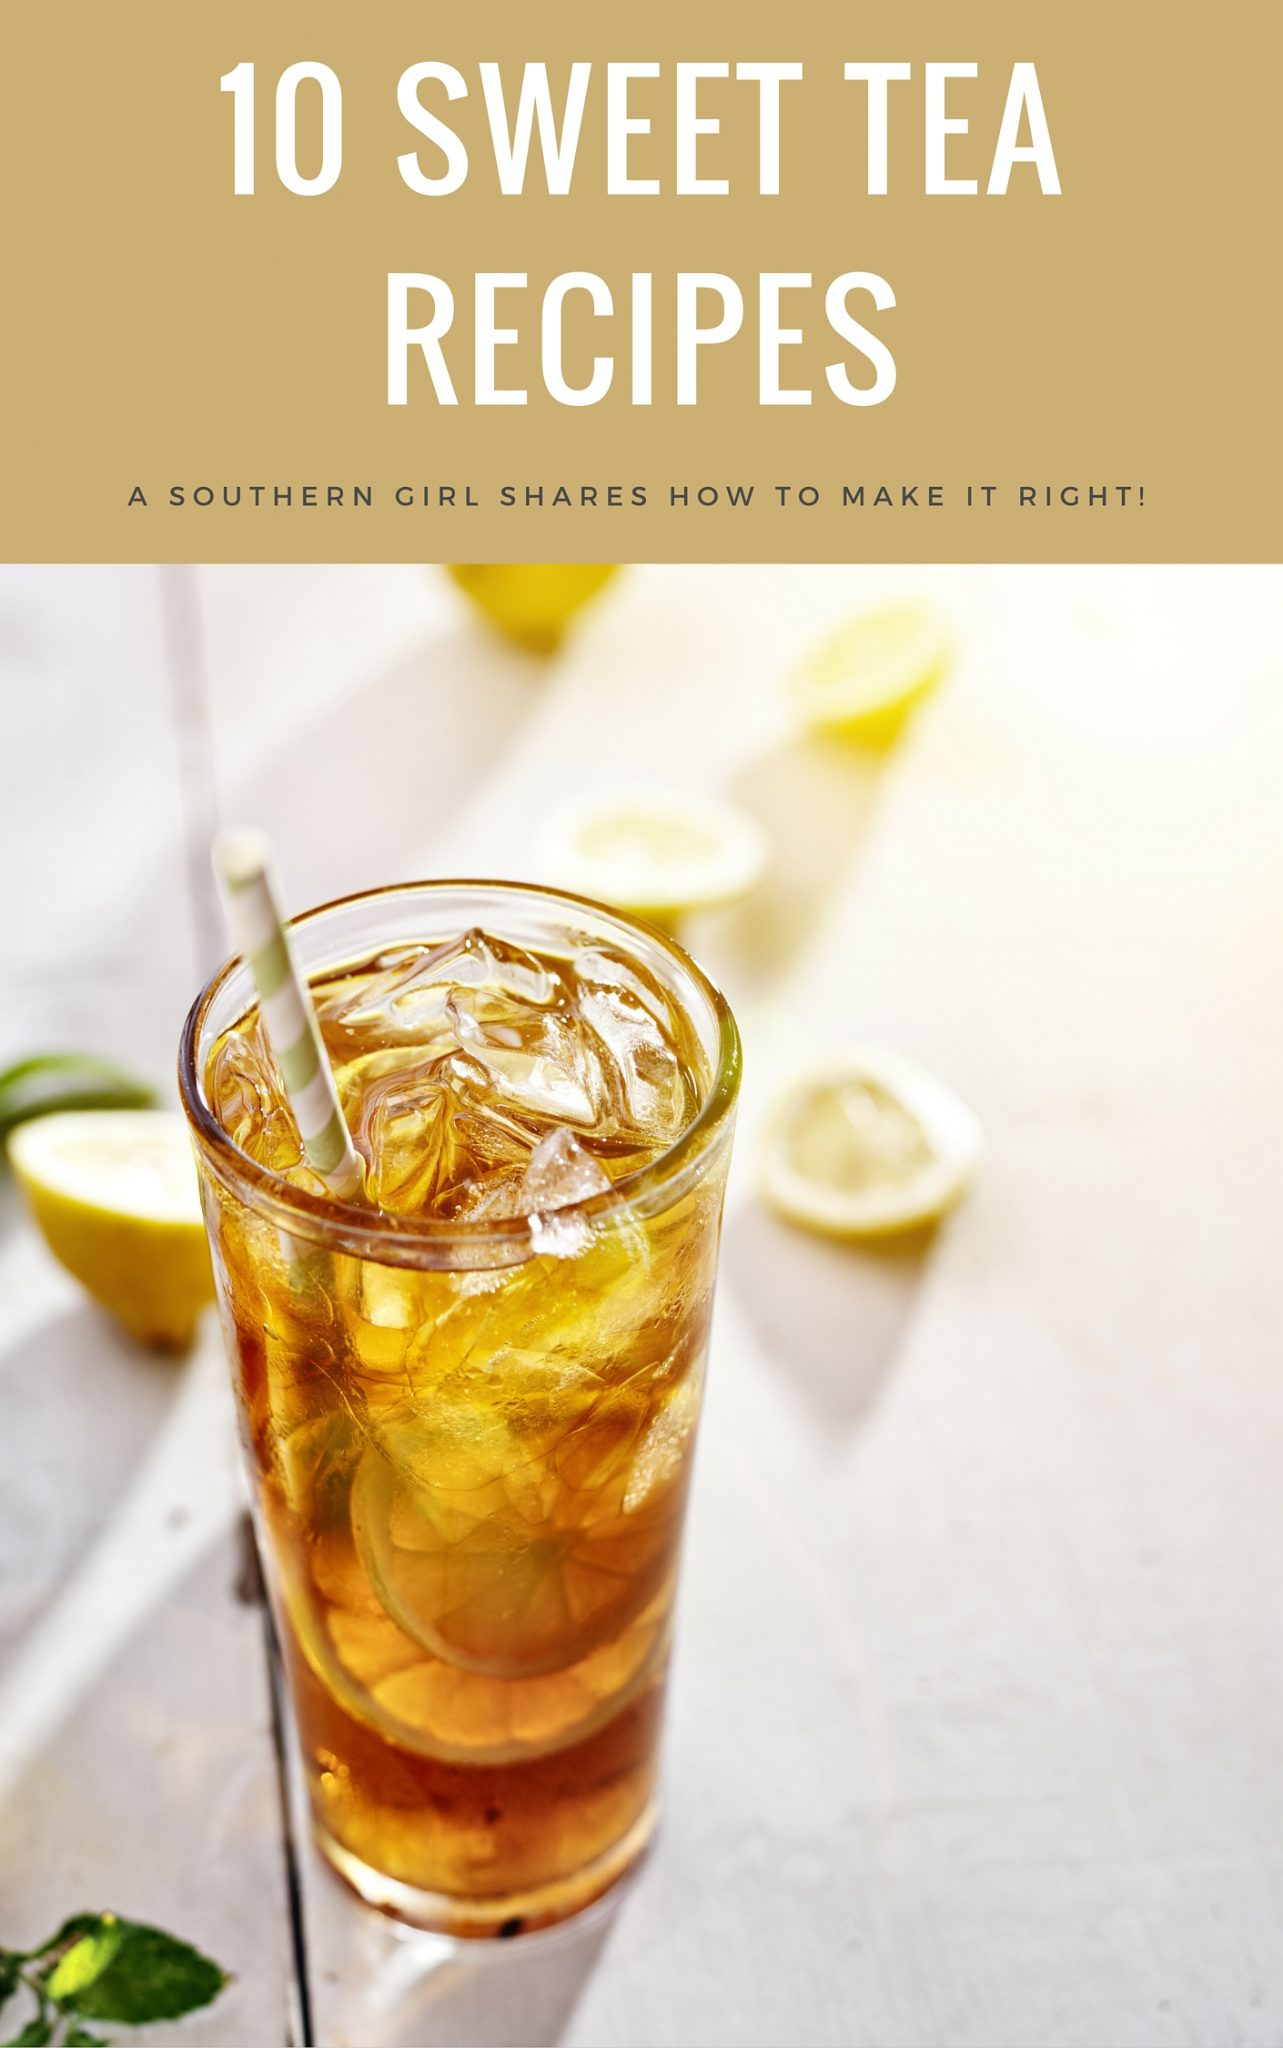 10 sweet tea recipes from a southern girl!